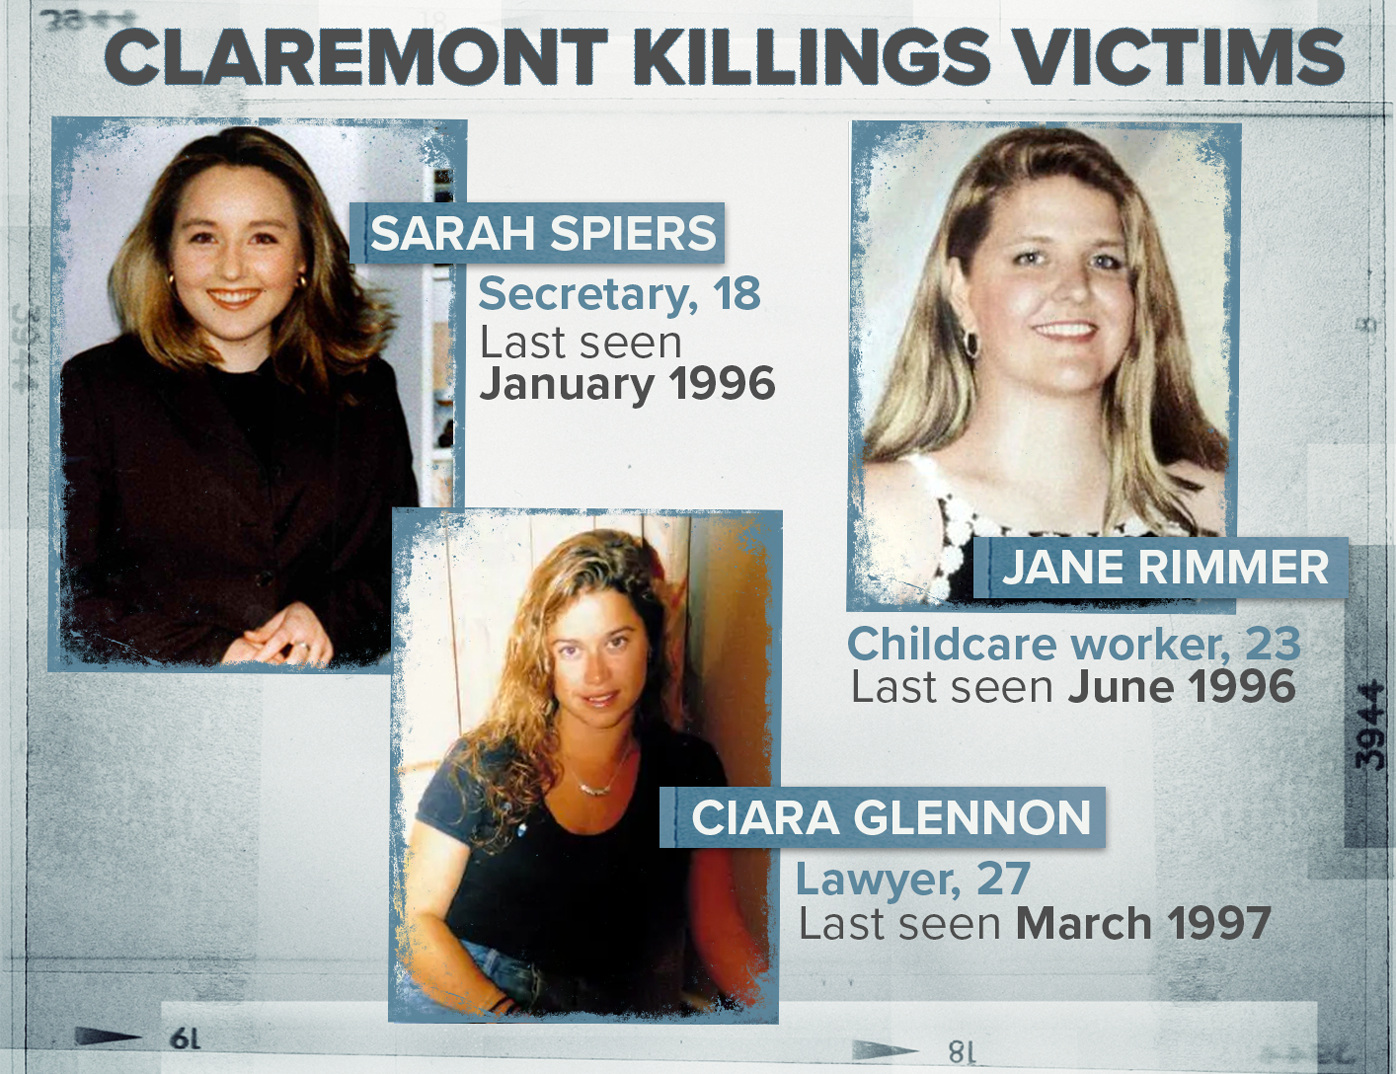 The Claremont killings victims: Sarah Spiers, Ciara Glennon and Jane Rimmer.